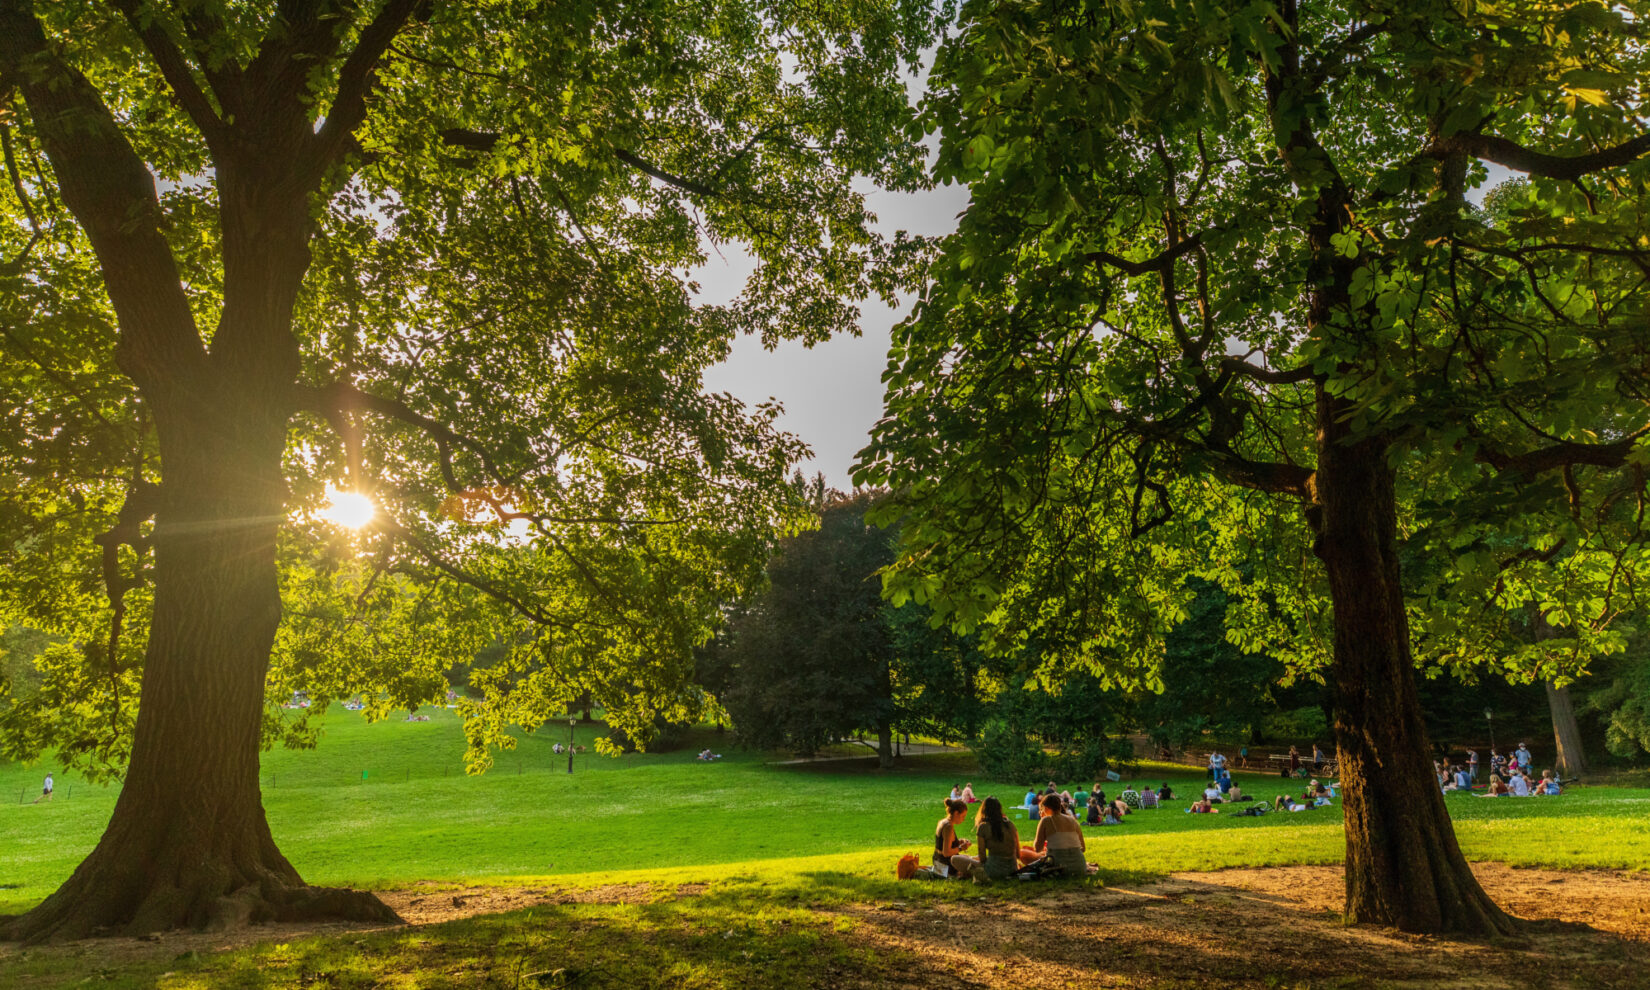 A clutch of parkgoers on a blanket beneath towering trees dramatically lit as the sun sets behind Cedar Hill